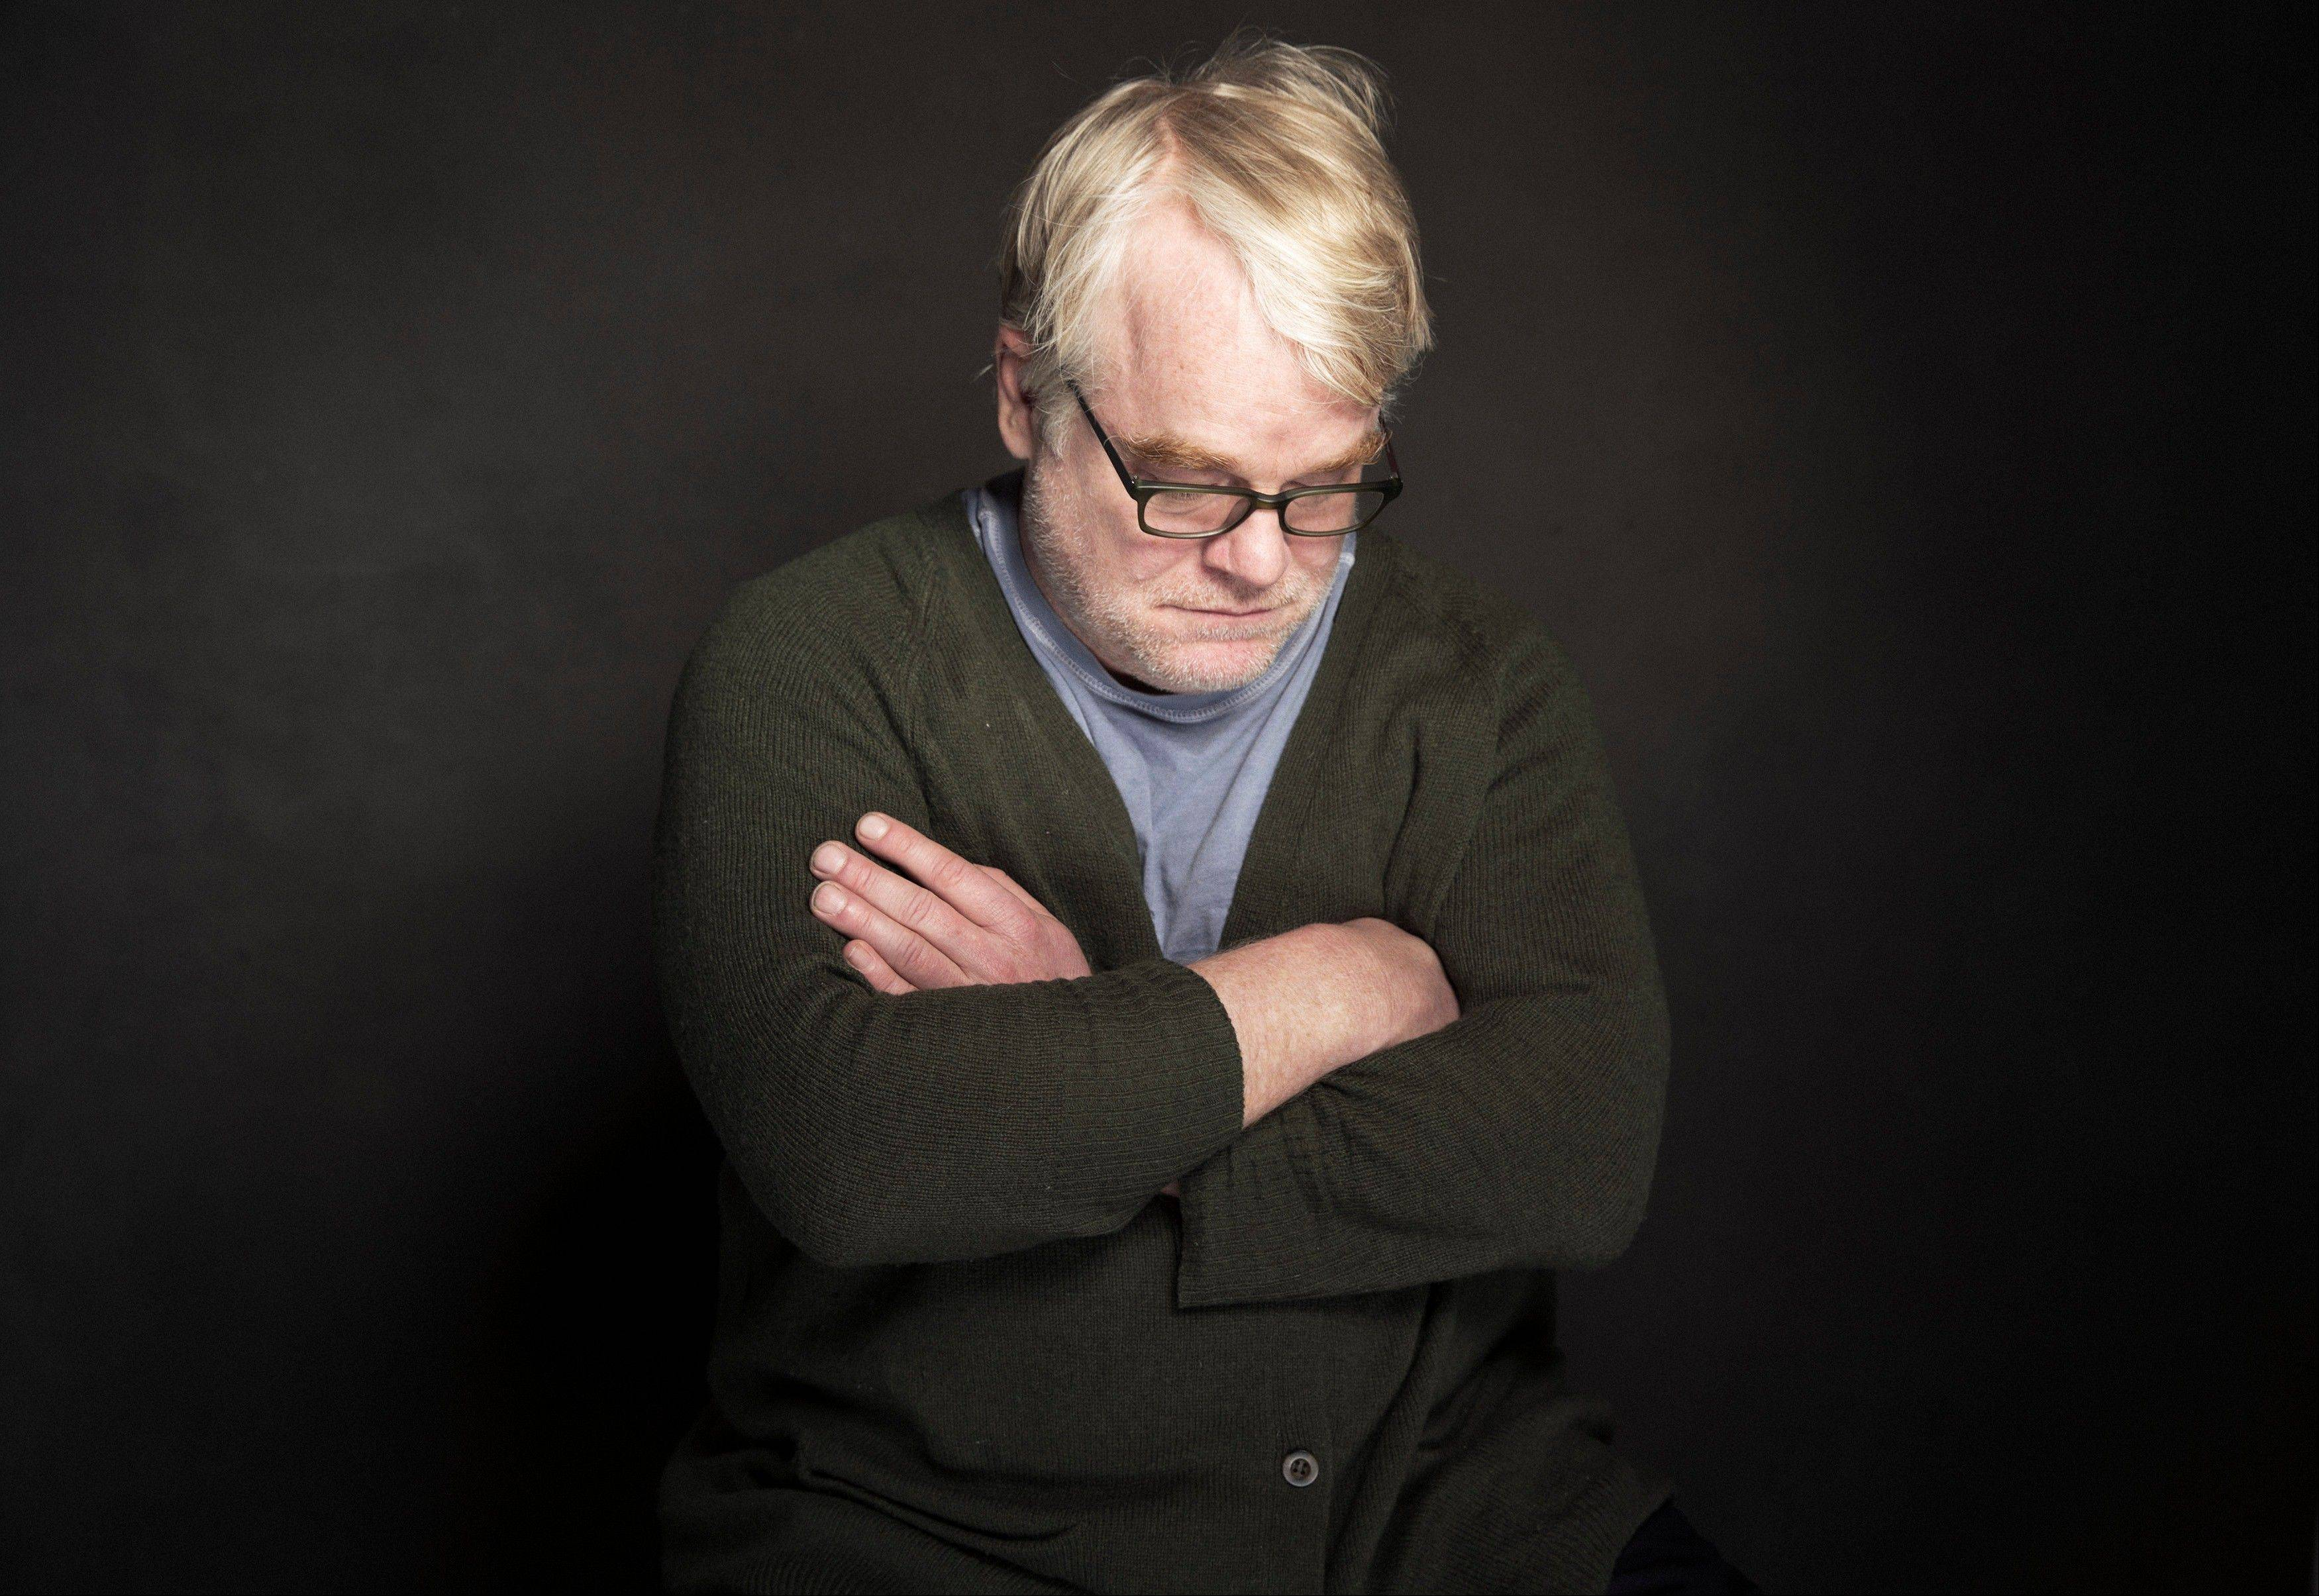 Four people were taken into custody on drug charges after police investigating the death of actor Philip Seymour Hoffman executed search warrants at several New York City apartments, two people with knowledge of the investigation said Wednesday.